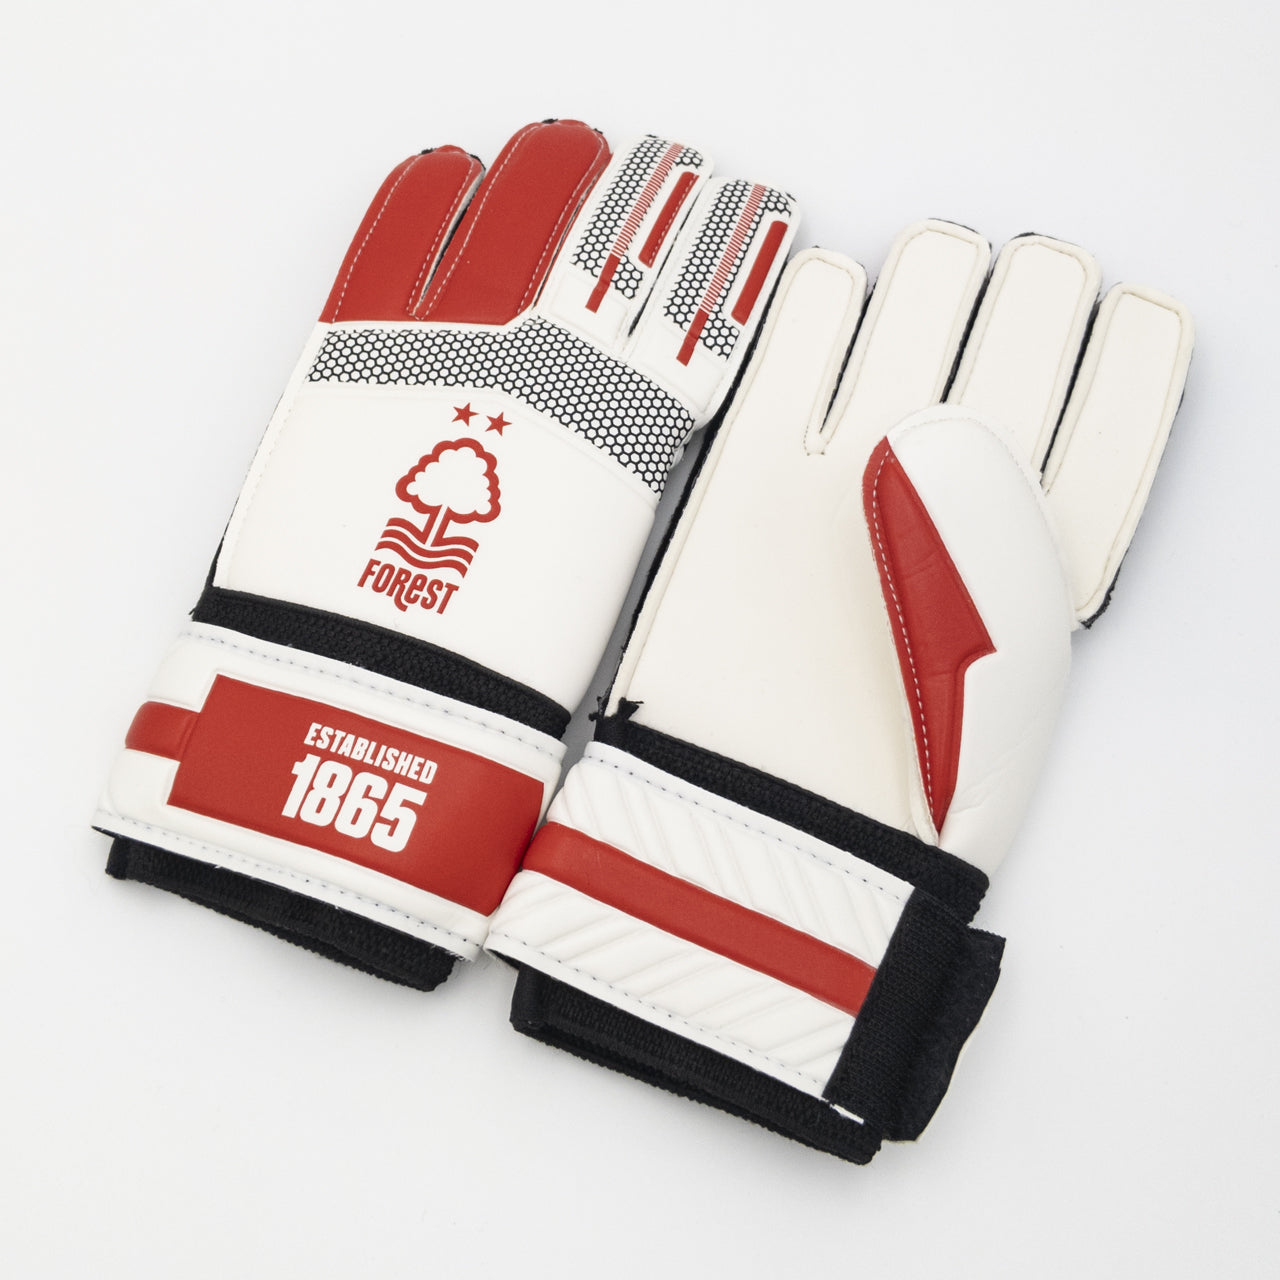 NFFC Red and White Goalkeeper Gloves